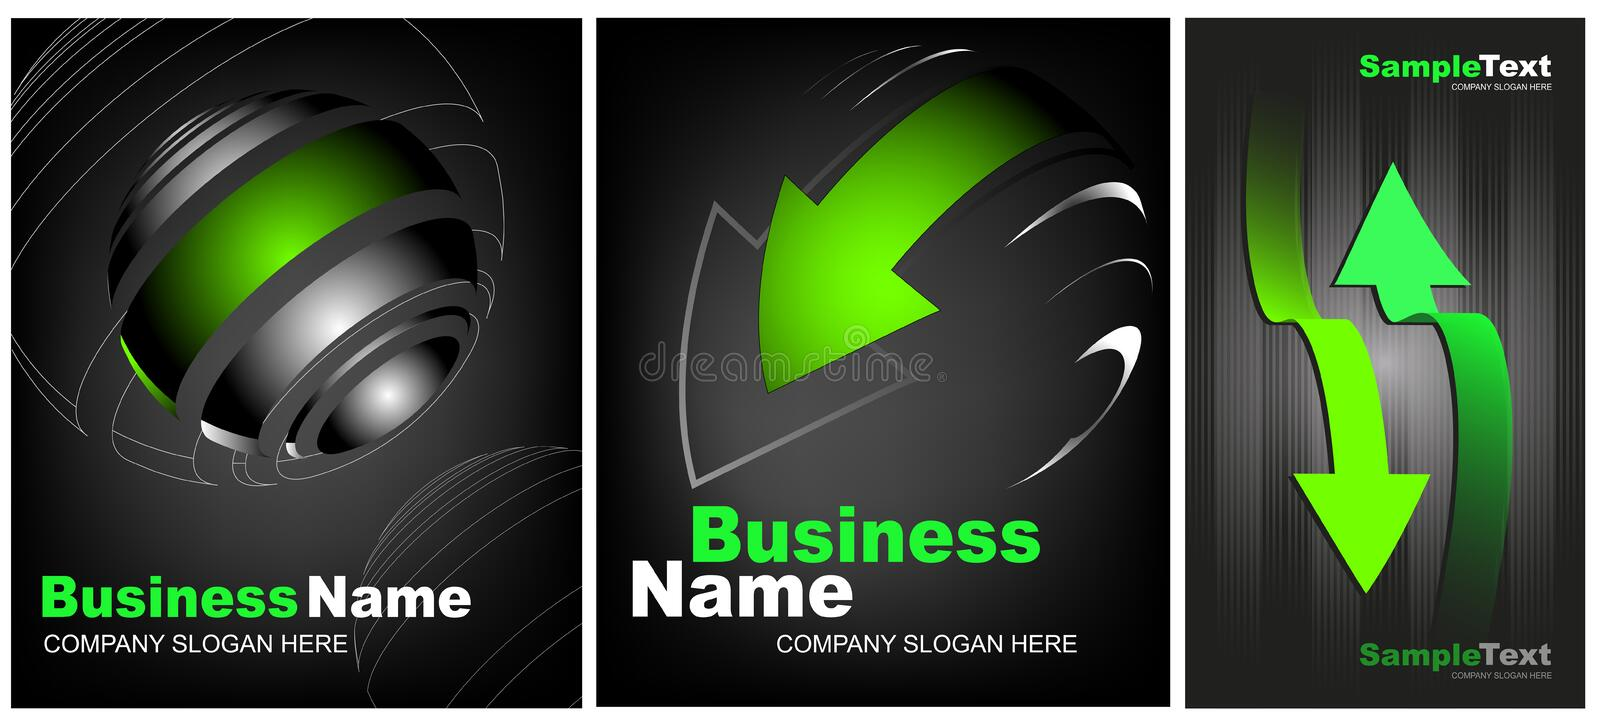 Premium Business Card and creative backgrounds royalty free illustration